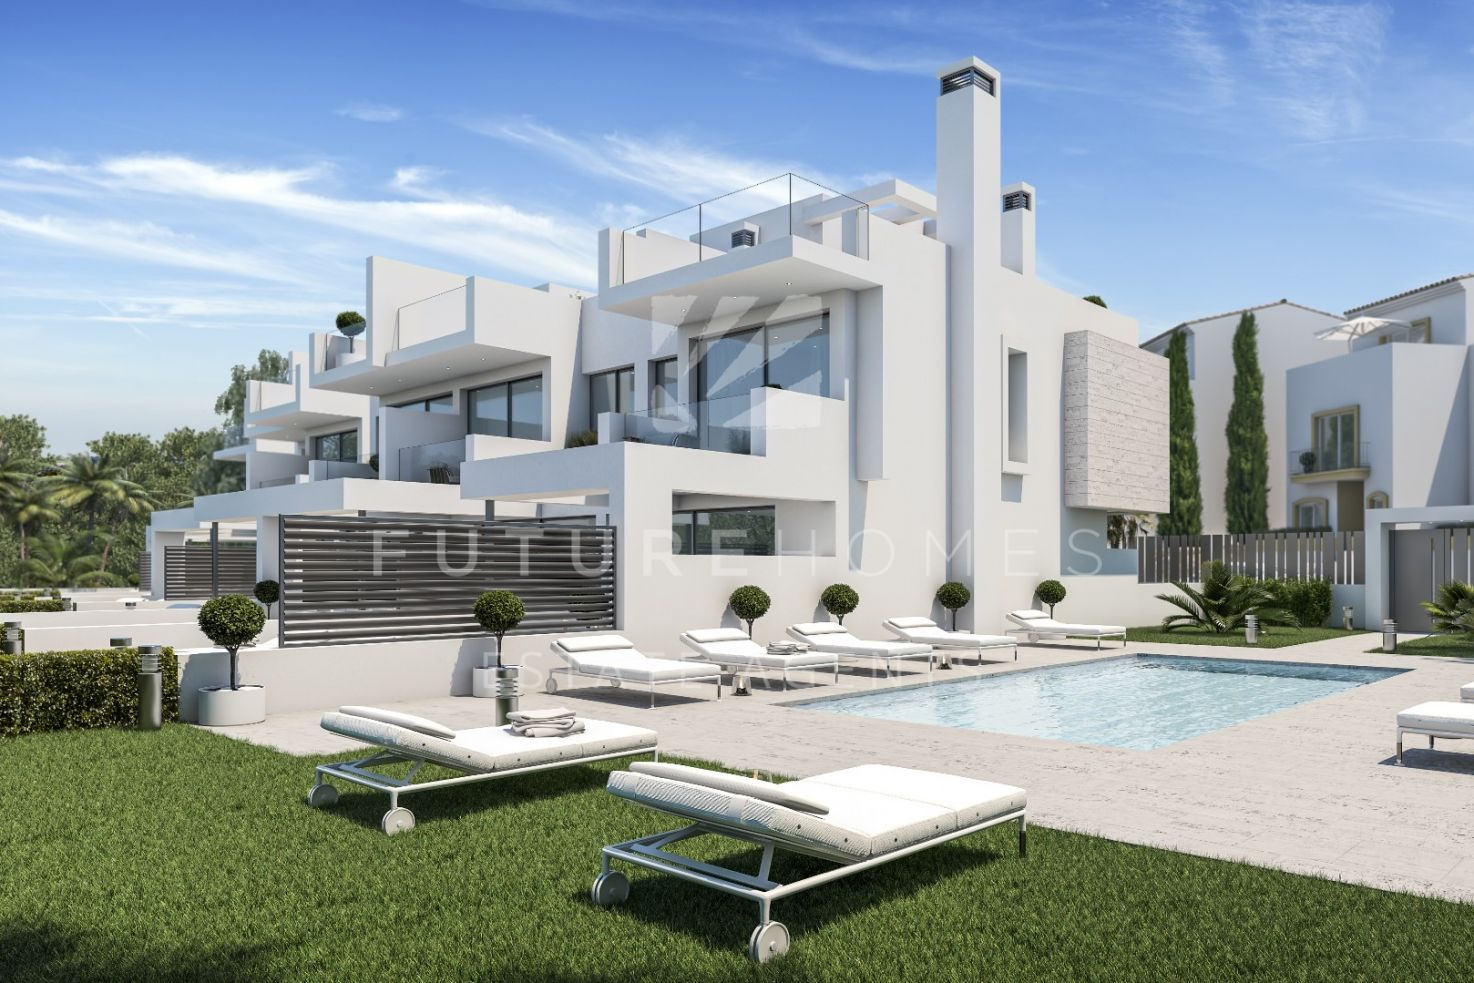 BRAND NEW modern semi-detached house next to the beach in Estepona!